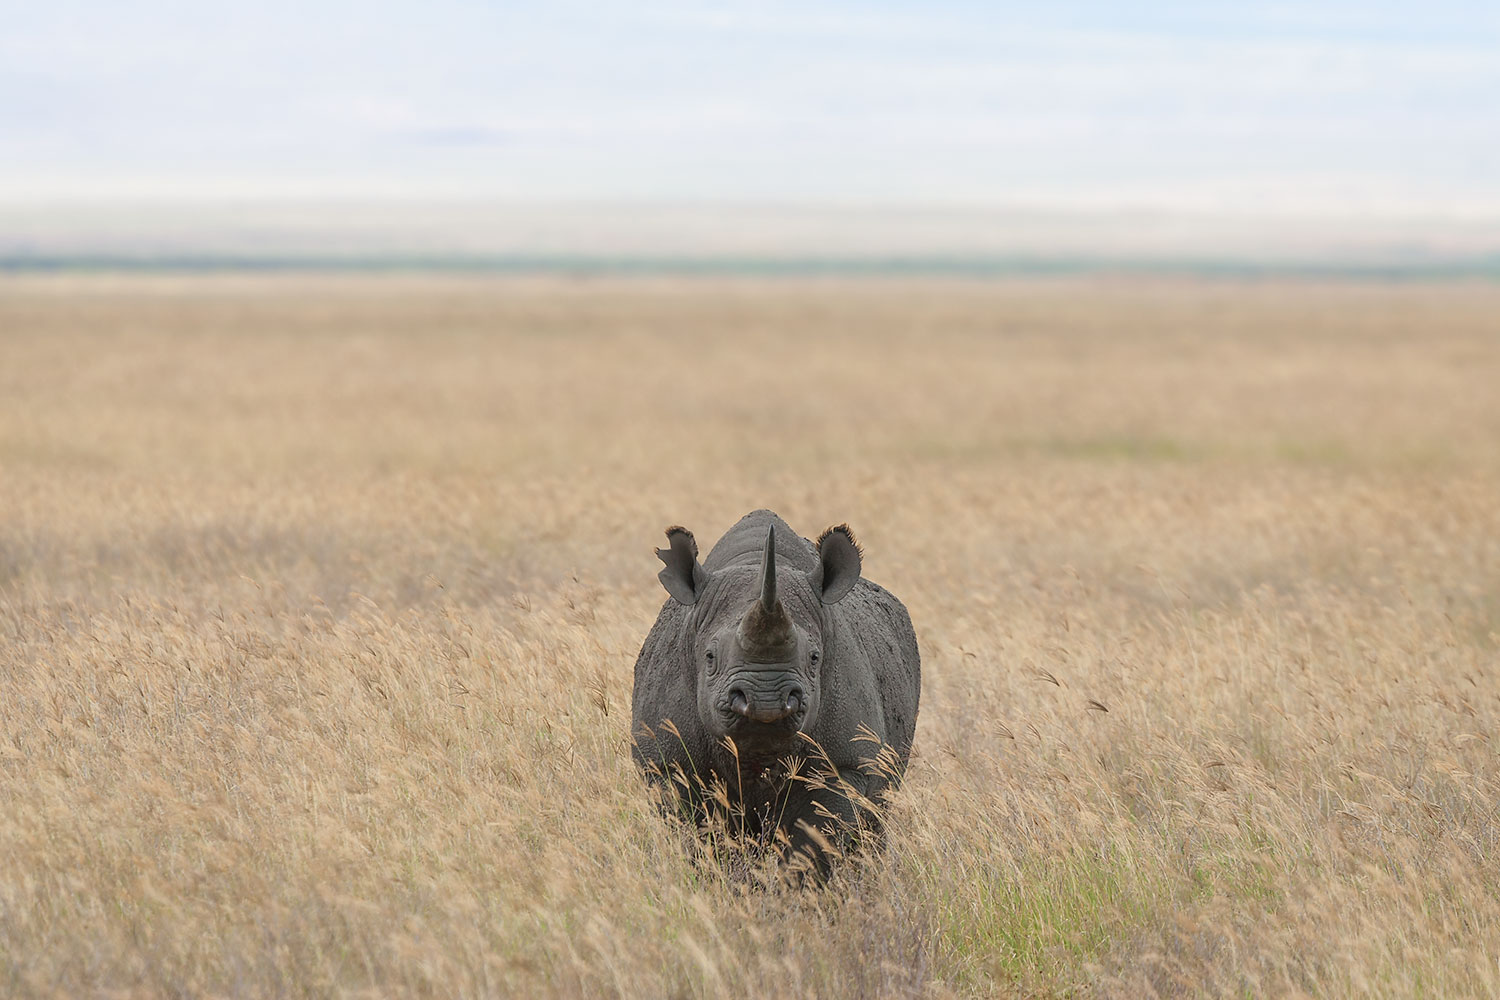 Black Rhinoceros  (Diceros bicornis)  - Ngorongoro Crater  Canon 1D mkII + Canon 300mm f/2.8IS w/ Canon 1.4x